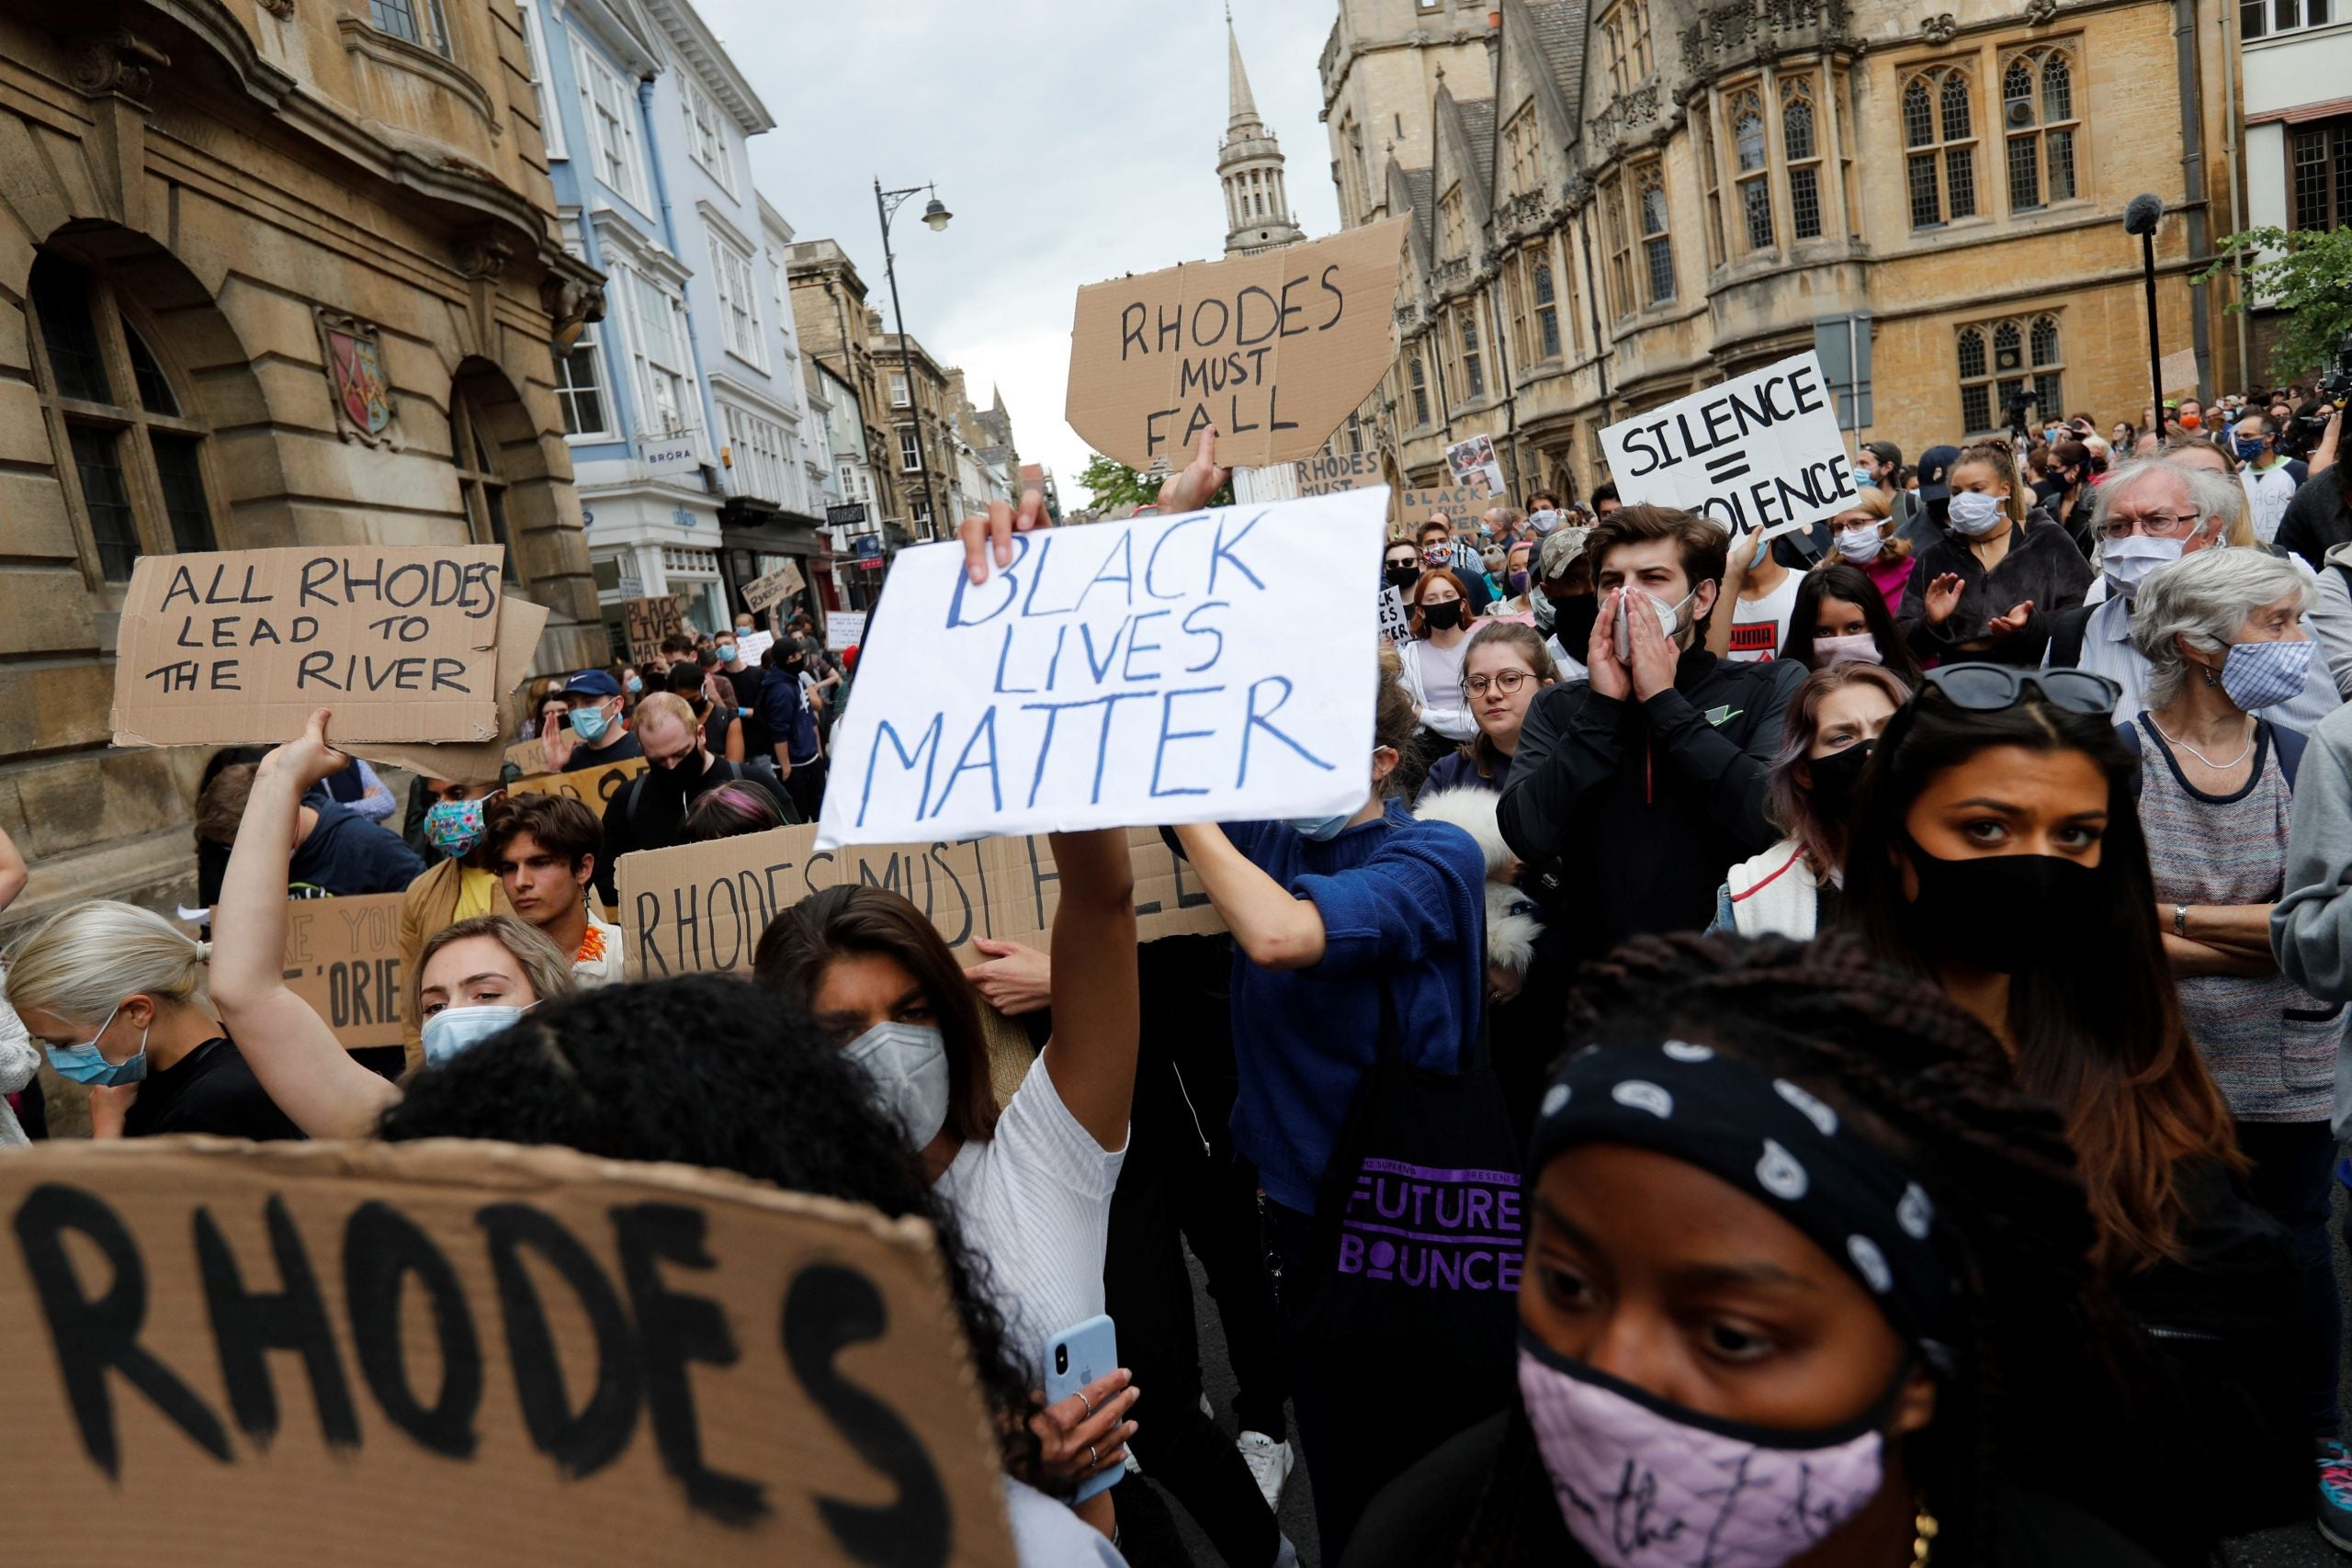 The power of protest videos